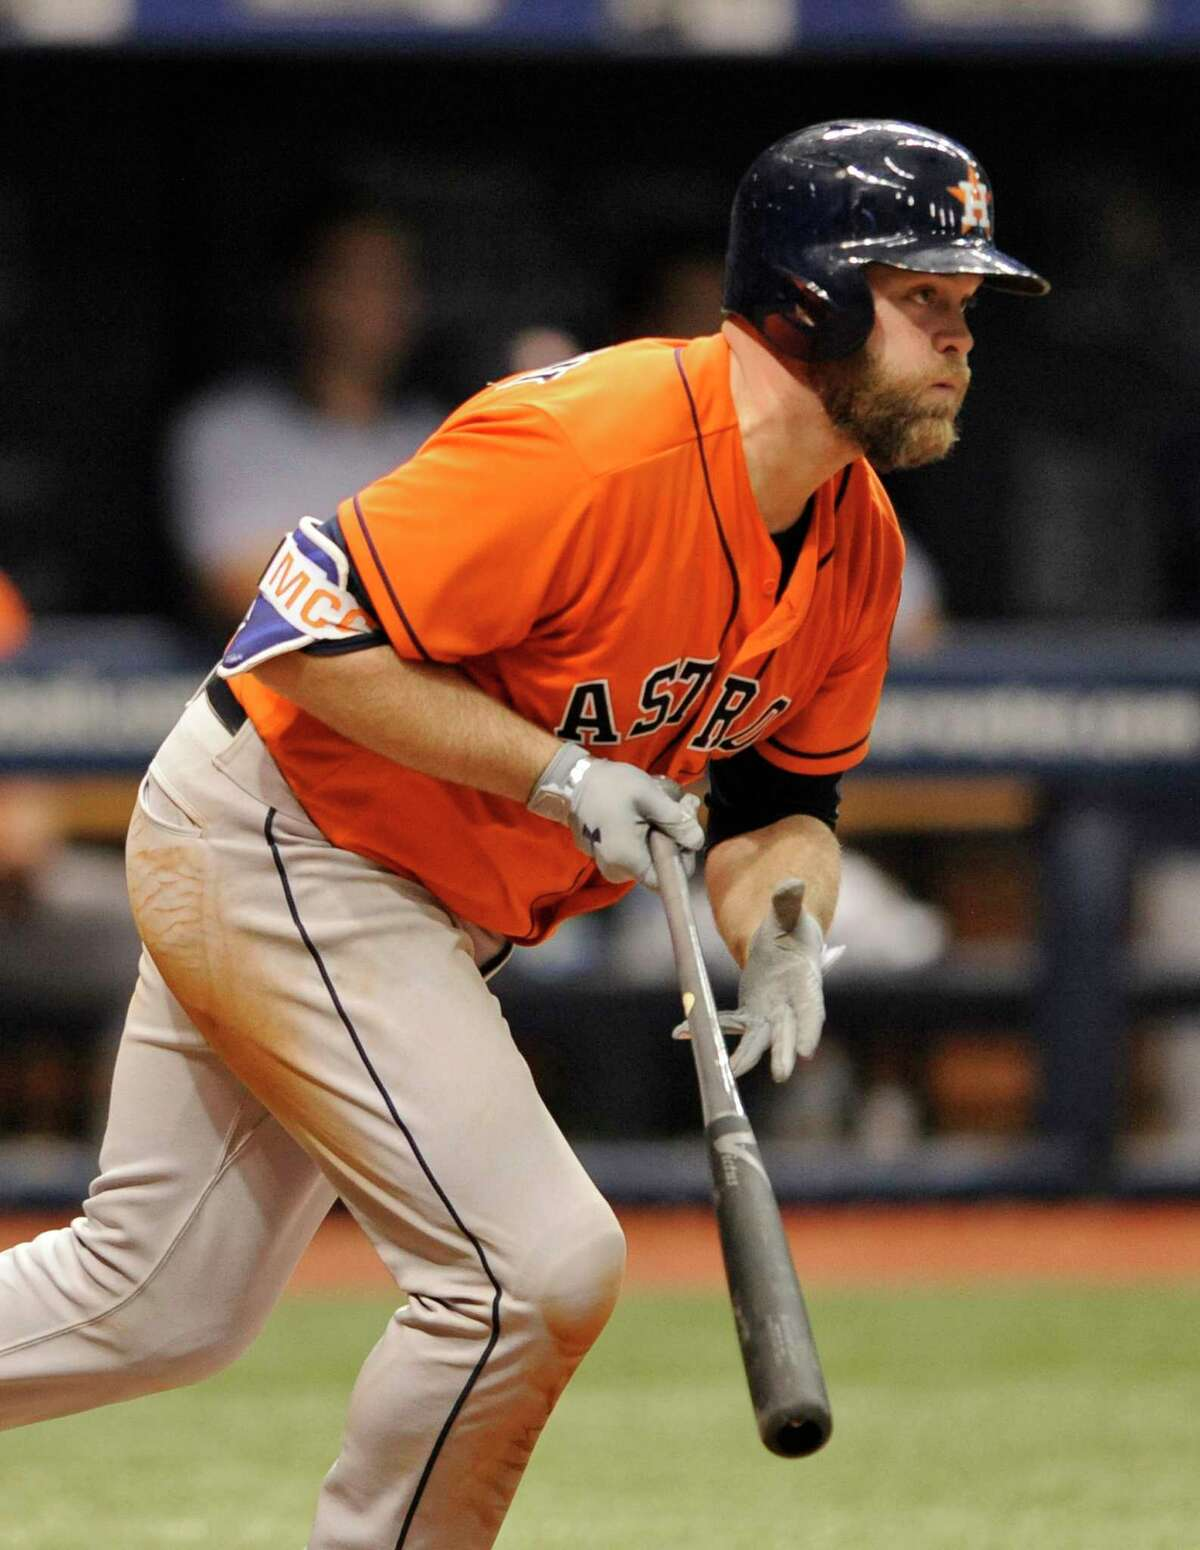 Houston Astros' Brian McCann hits an RBI-single off Tampa Bay Rays reliever Ryan Garton during the 10th inning of a baseball game, Sunday, April 23, 2017, in St. Petersburg, Fla. (AP Photo/Steve Nesius)